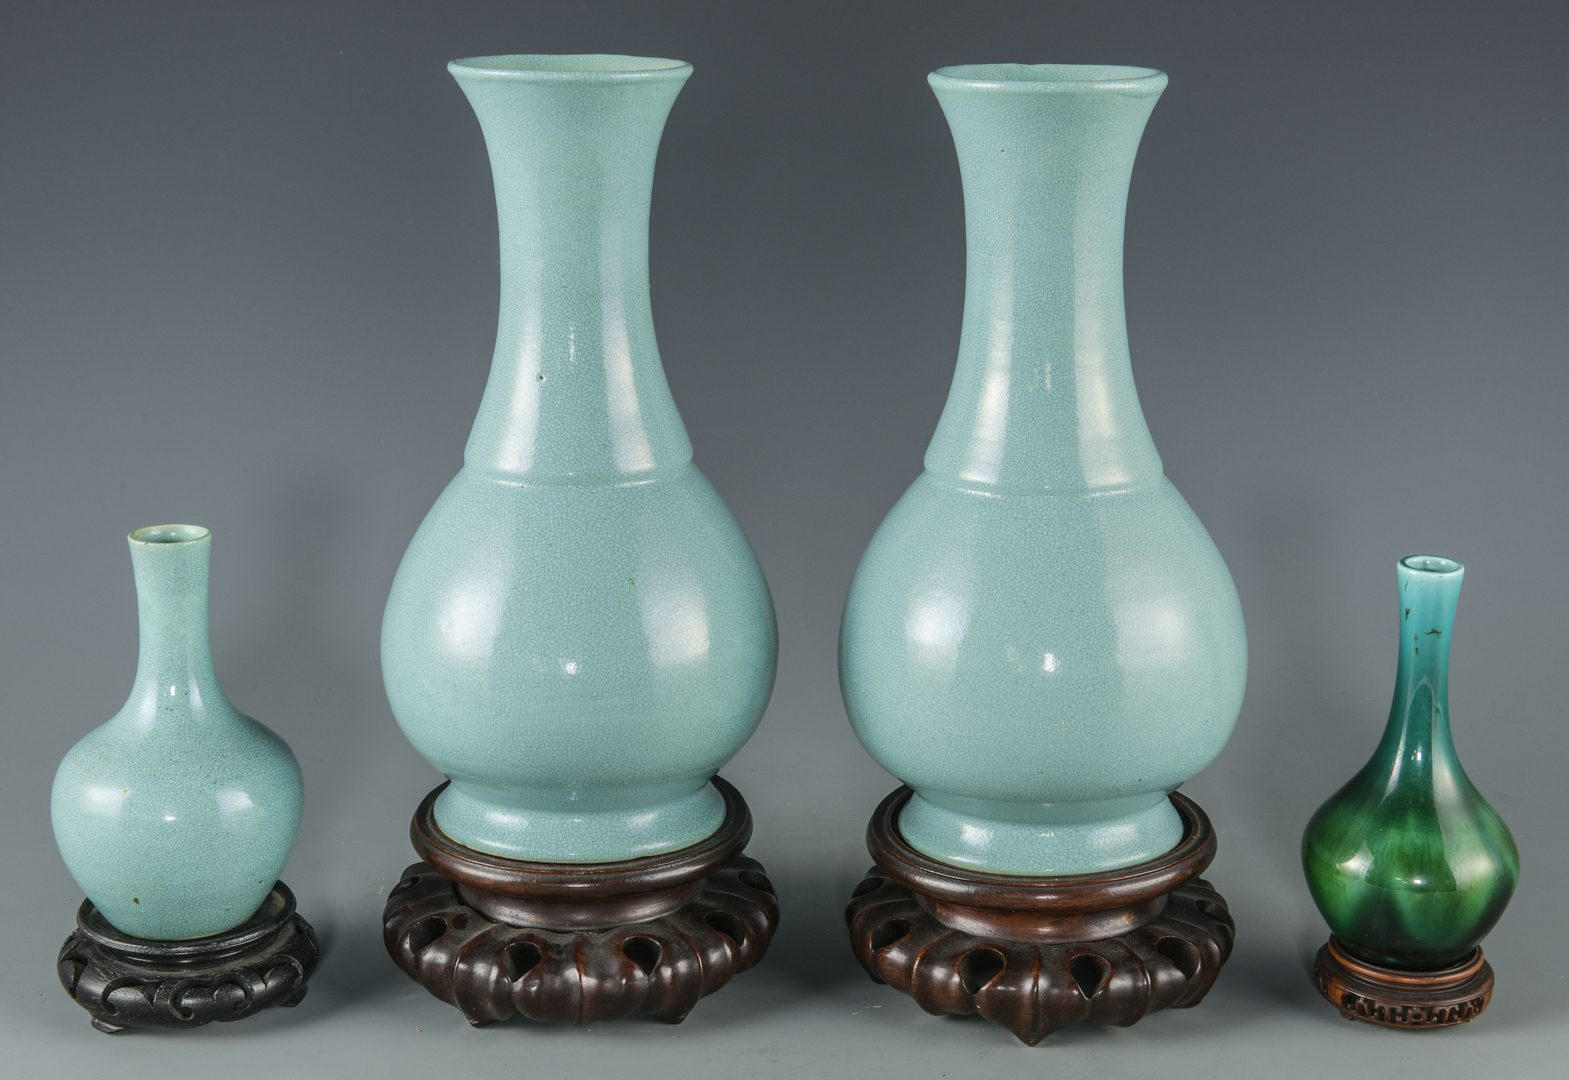 Lot 269: 4 Chinese Porcelain Bottle Vases w/ Stands